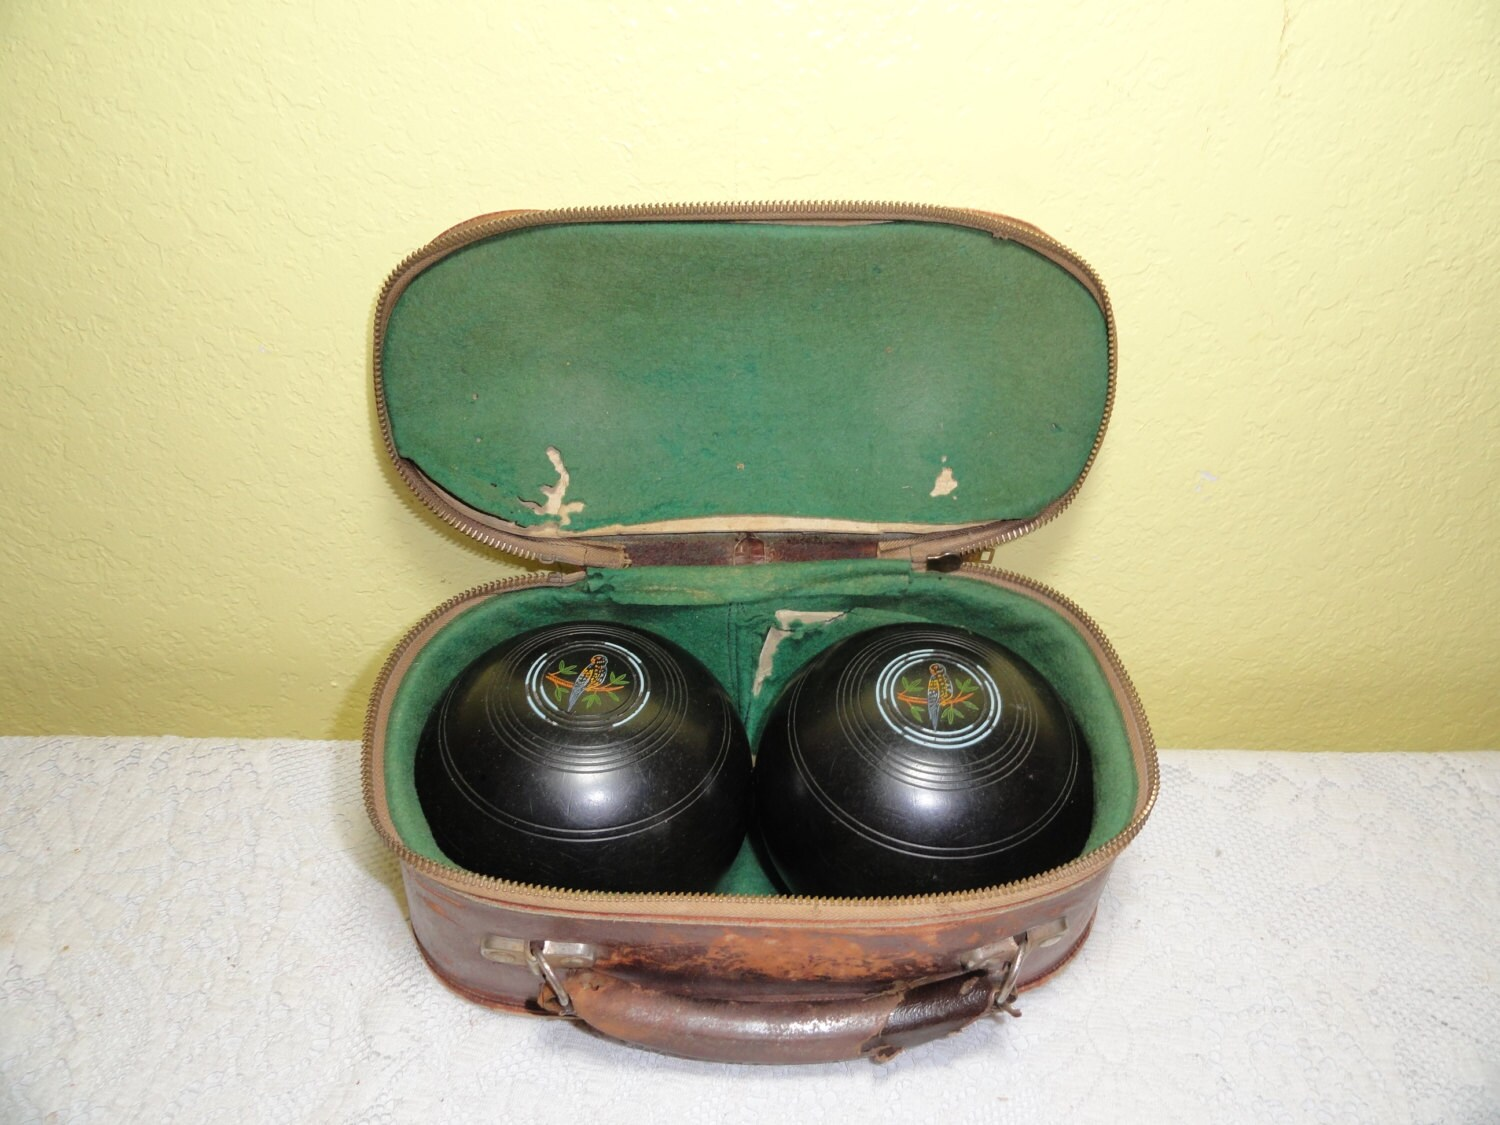 Bocce Ball Lawn Bowling : Items similar to Vintage Bocce Lawn Bowling Balls in Leather Case